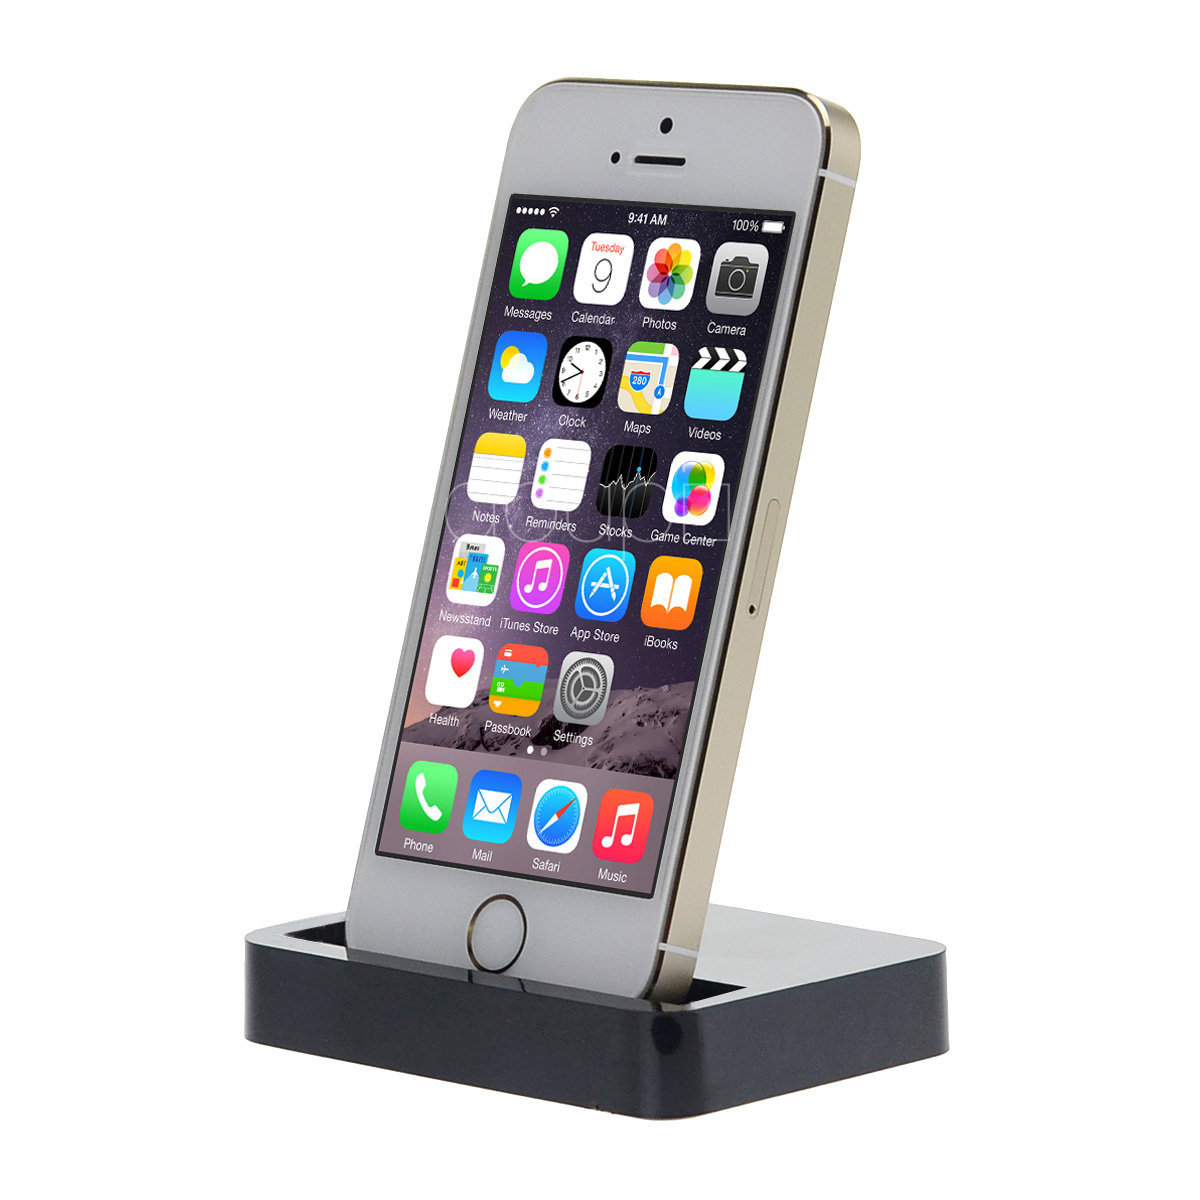 dock docking station iphone 6 6s plus 5 5c 5s se loading device data sync black ebay. Black Bedroom Furniture Sets. Home Design Ideas